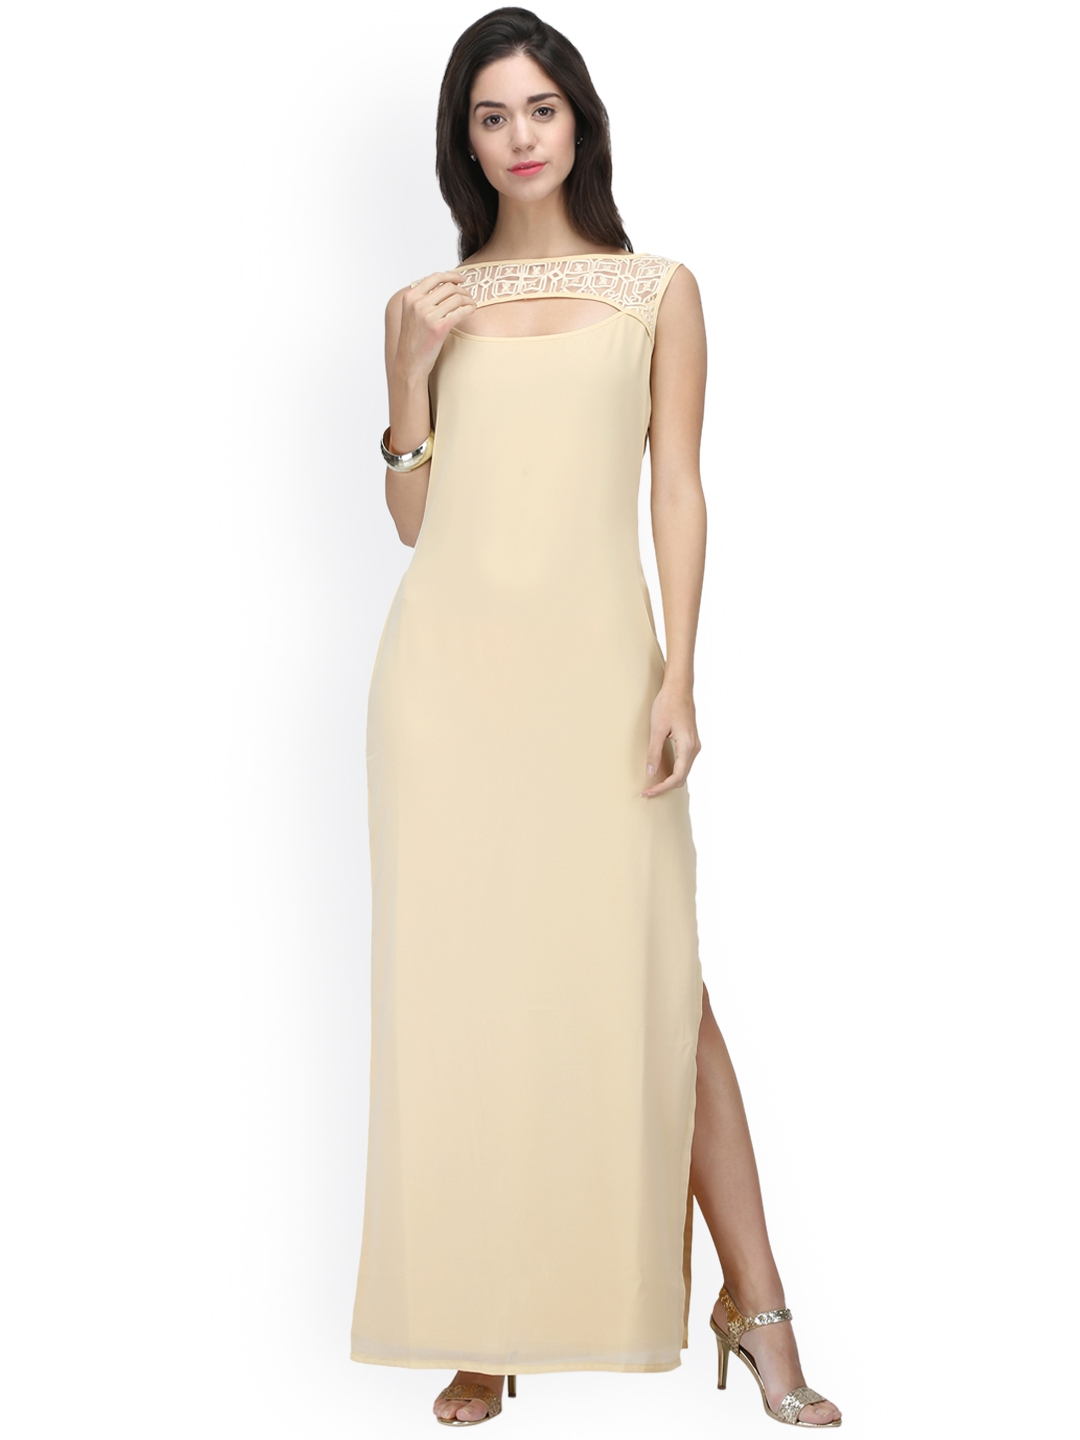 ae297a6afe63 Buy Eavan Women Cream Coloured Solid Maxi Dress With Embroidery ...